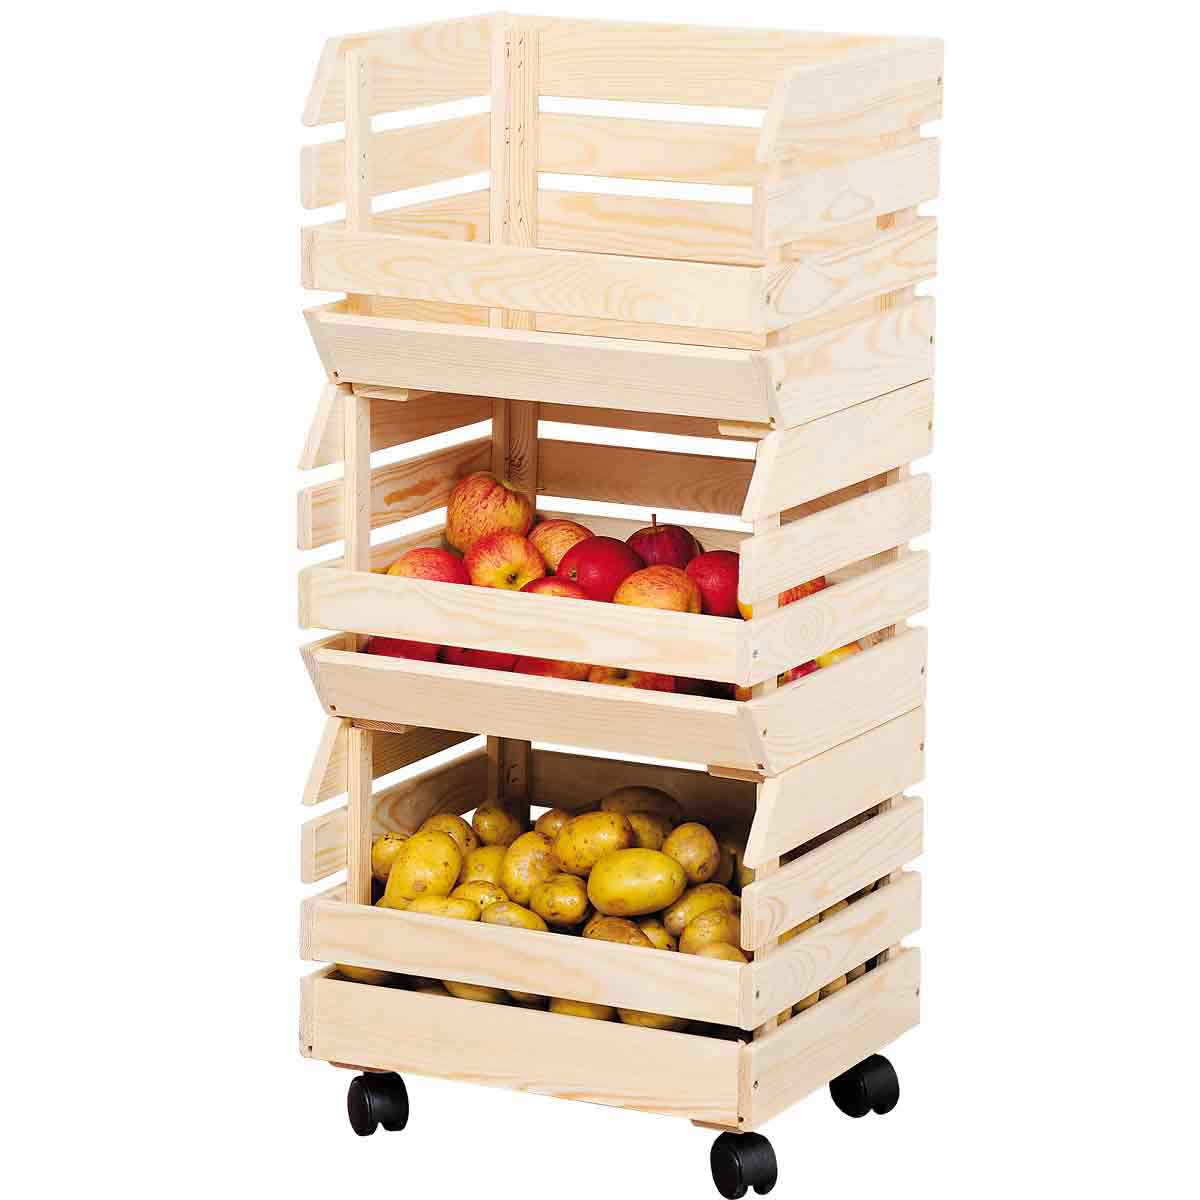 cagettes sur roulettes meuble de rangement fruits l gumes. Black Bedroom Furniture Sets. Home Design Ideas